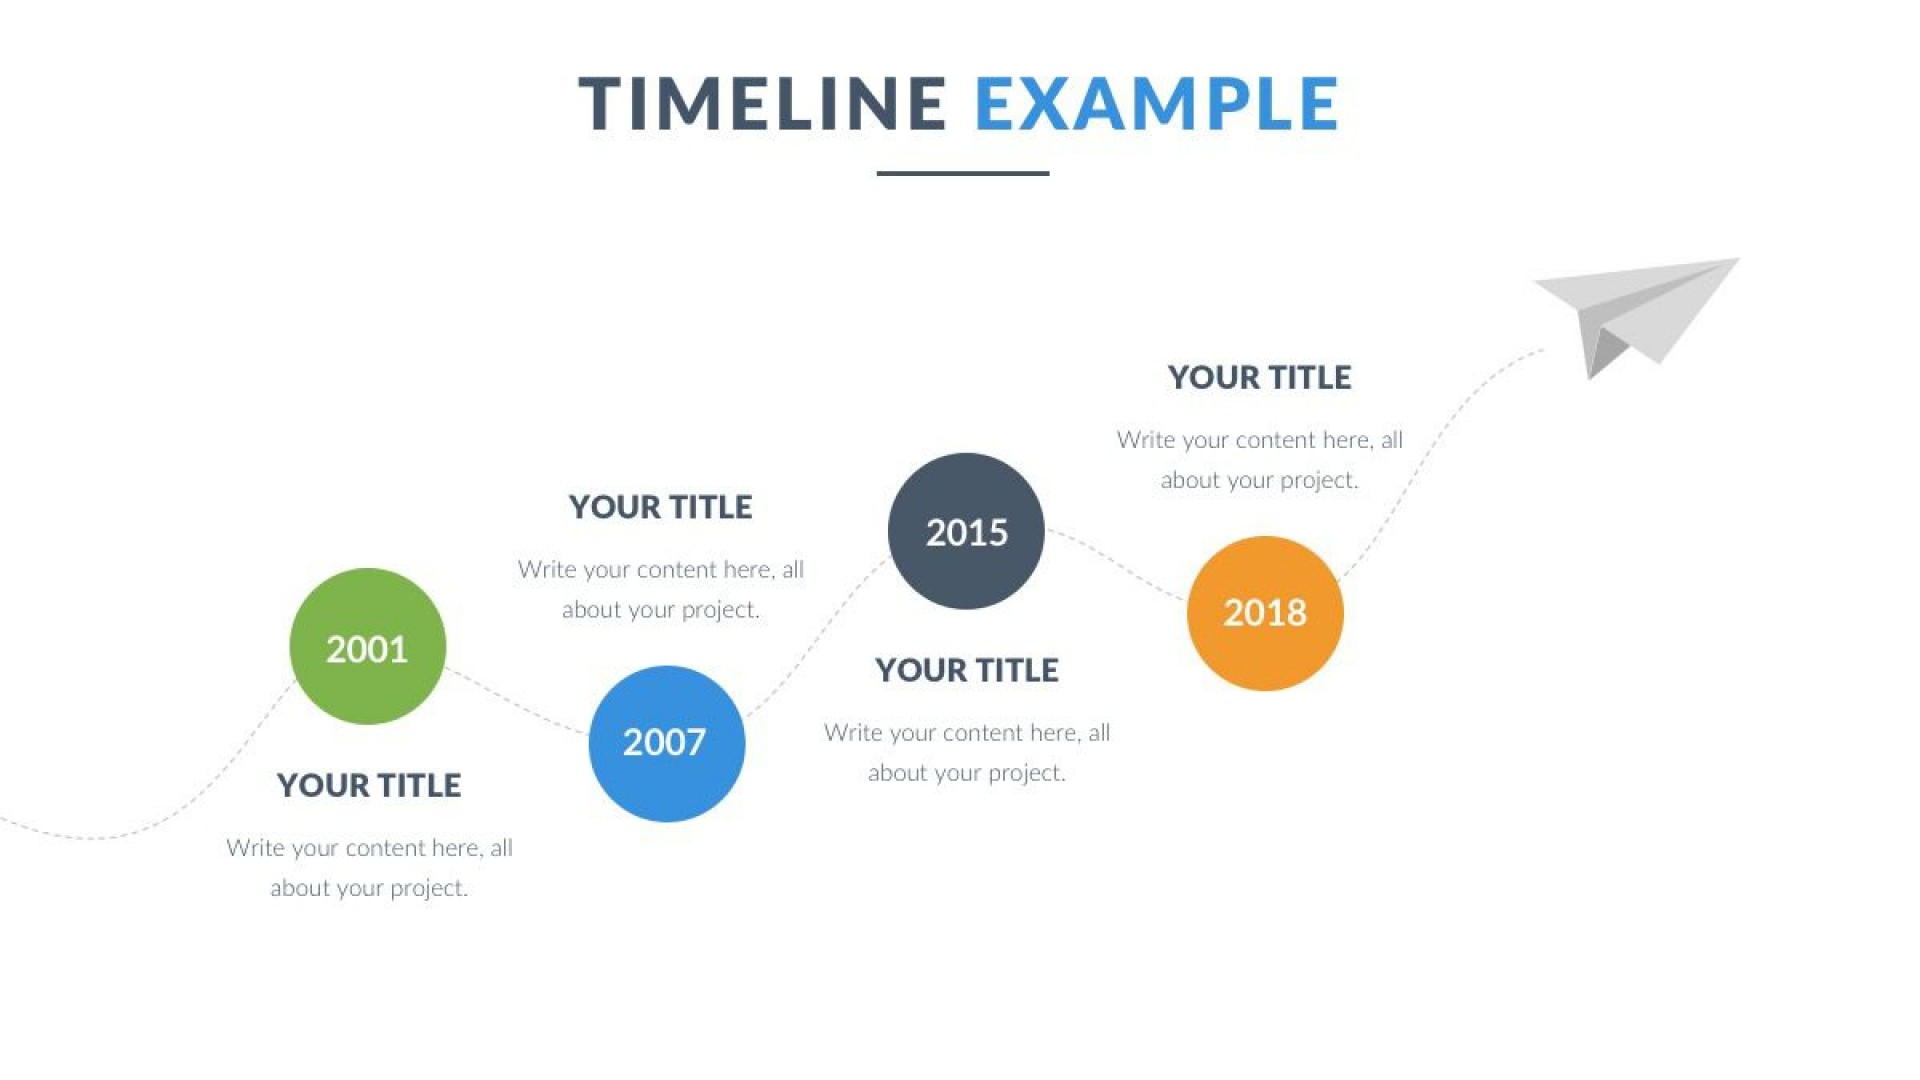 009 Dreaded Timeline Example Presentation Photo  Project Slide Template1920